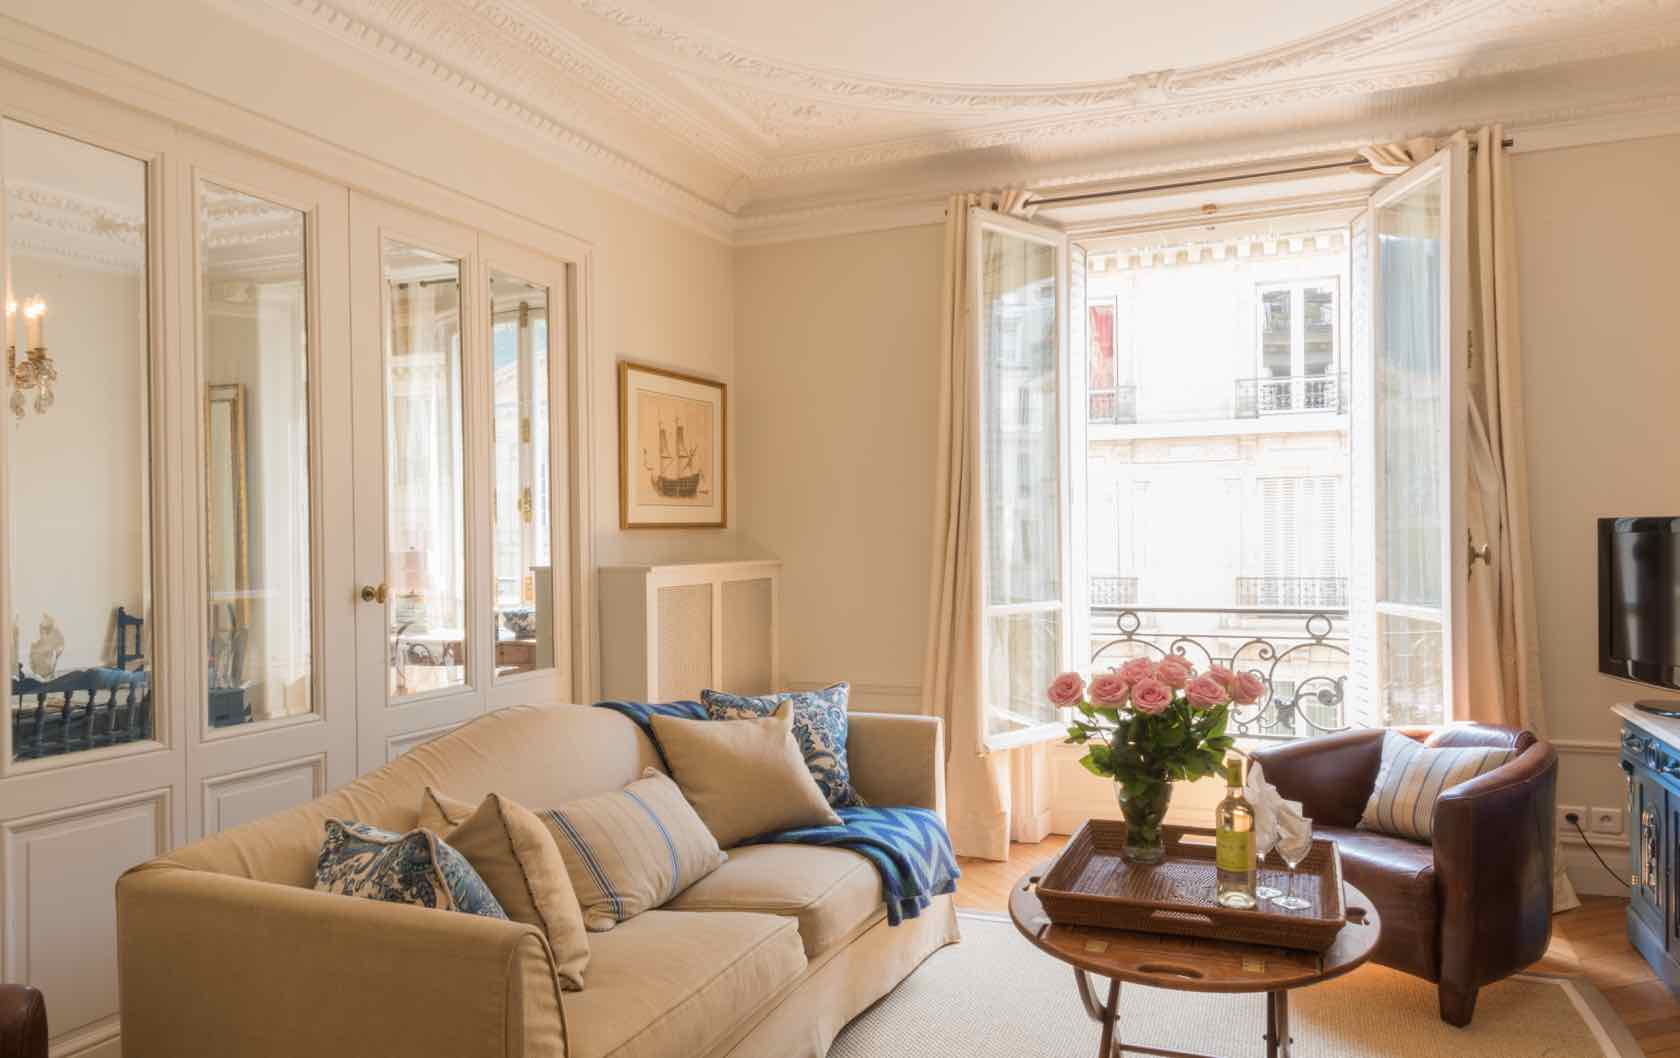 Live Like a Local in the Gamay, a Long-Term Rental in Paris